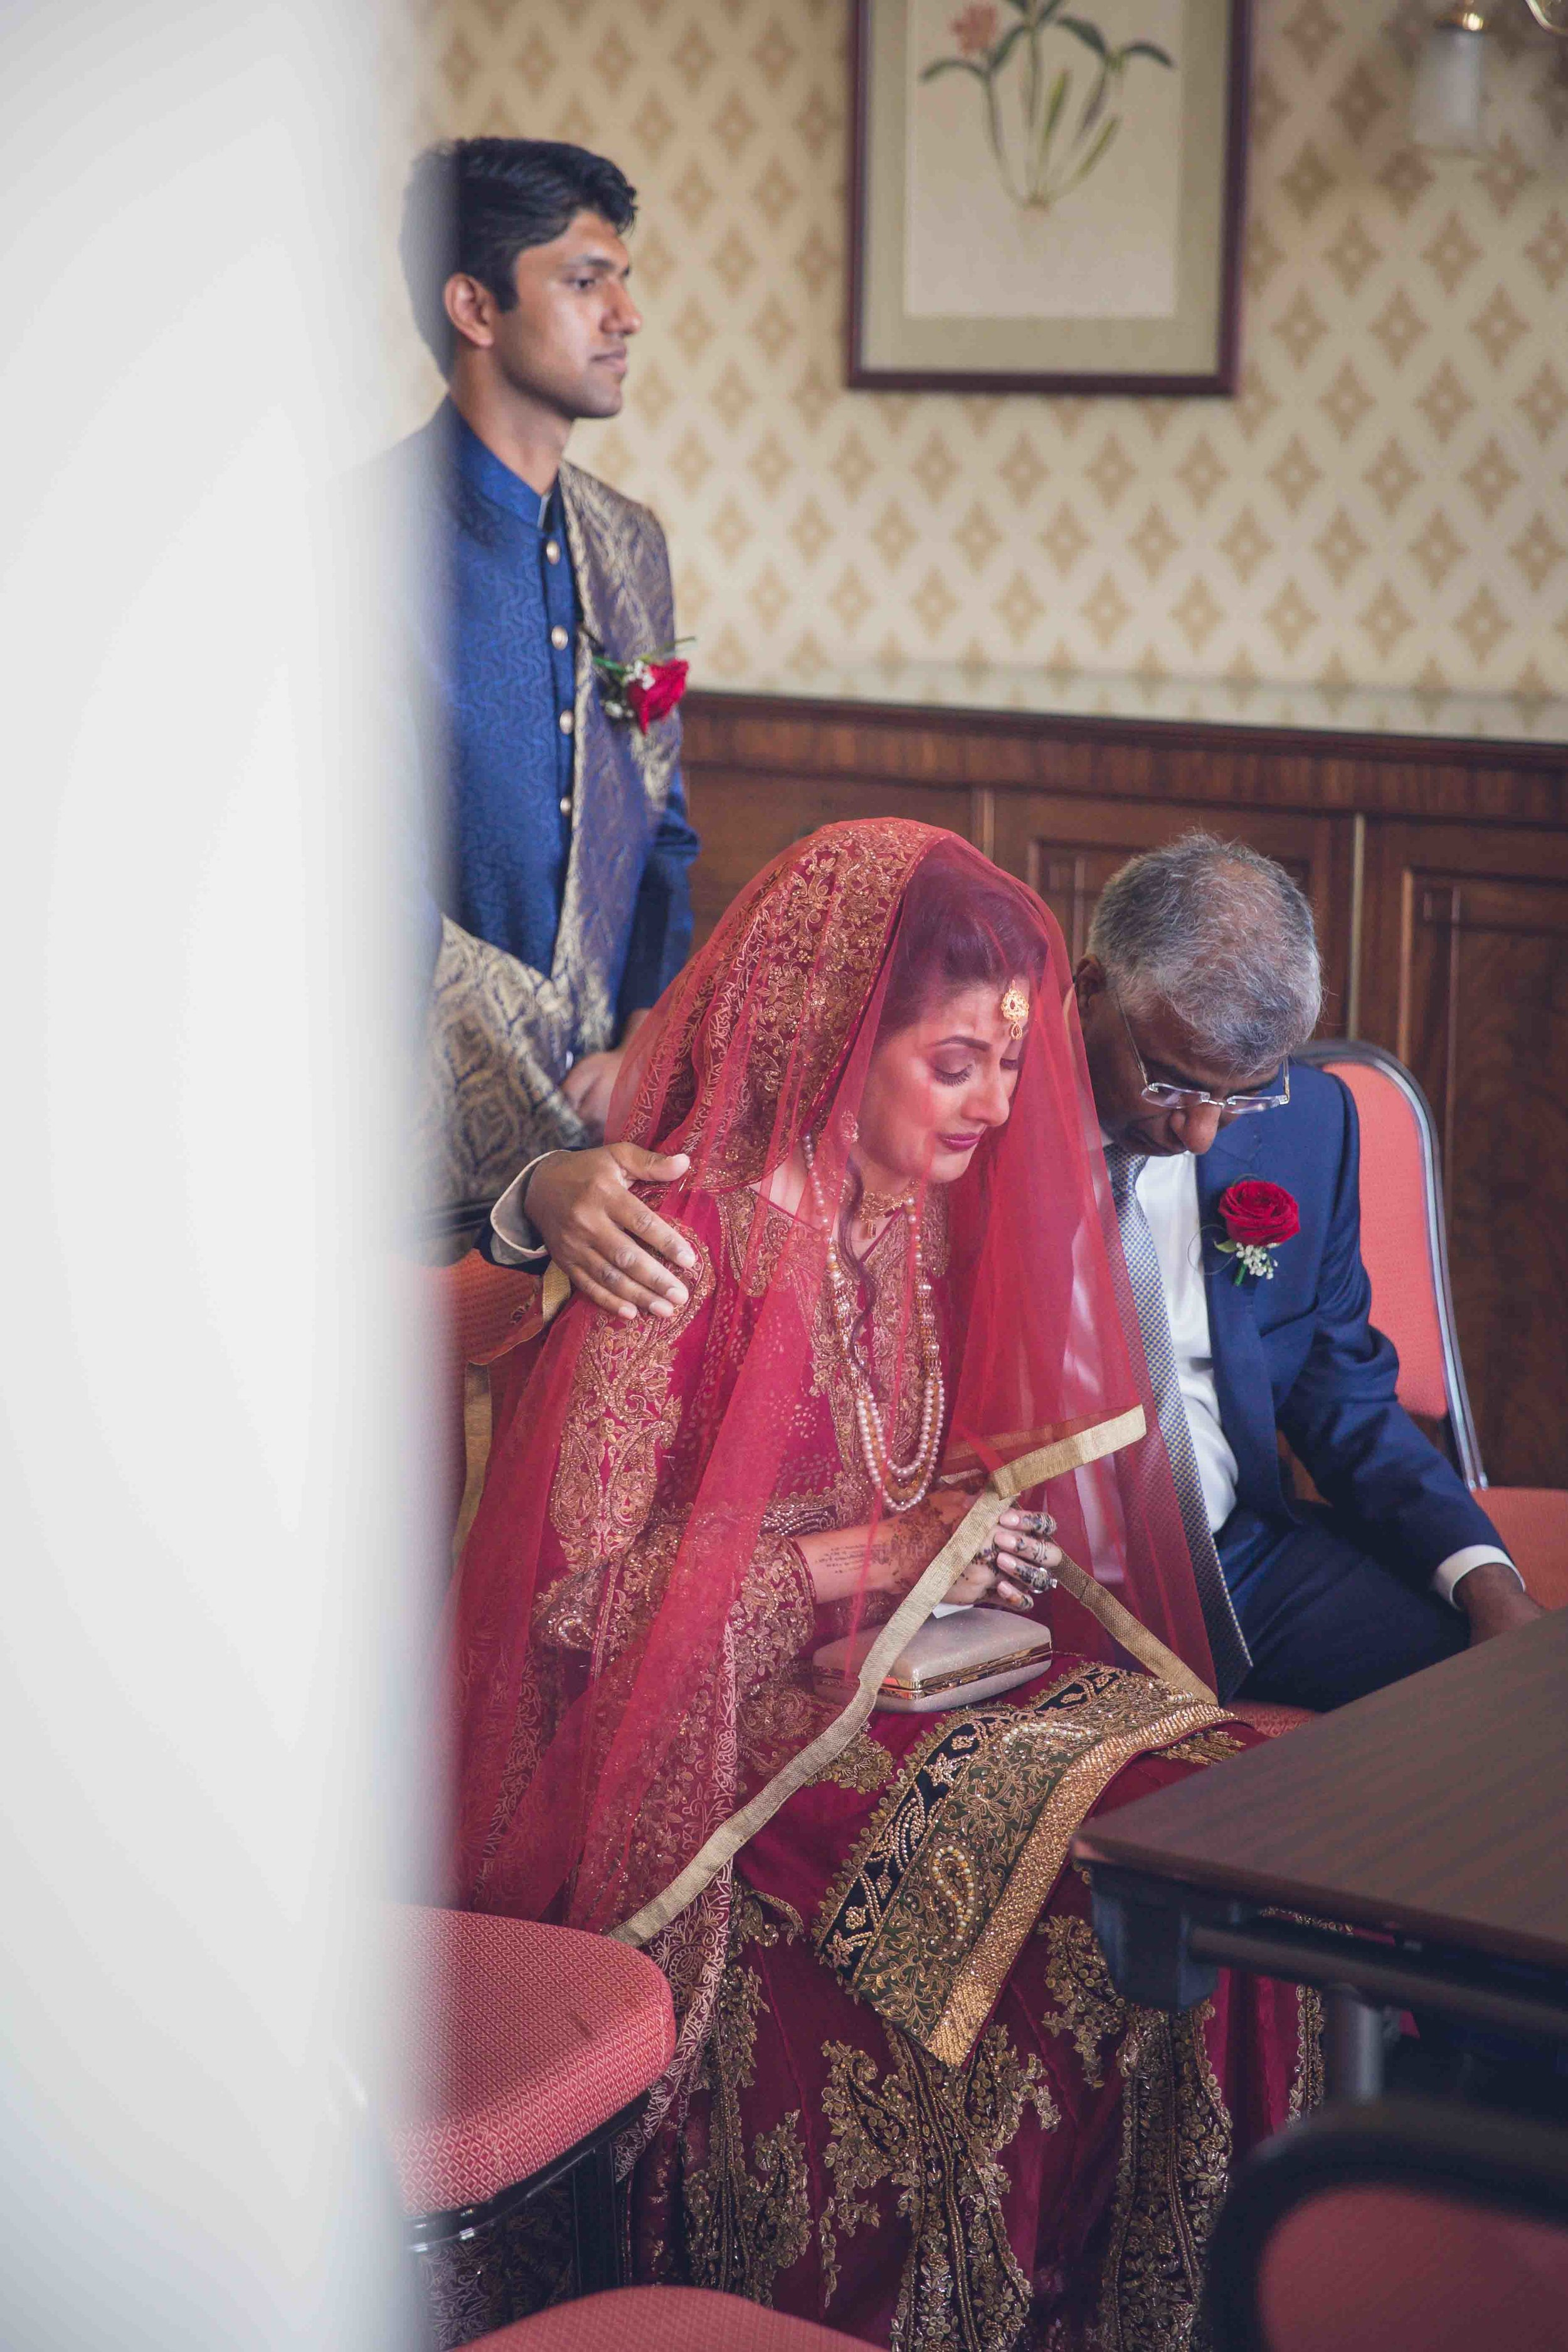 Opu Sultan Photography Asian wedding photography scotland edinburgh glasgow manchester birmingham london-276.jpg